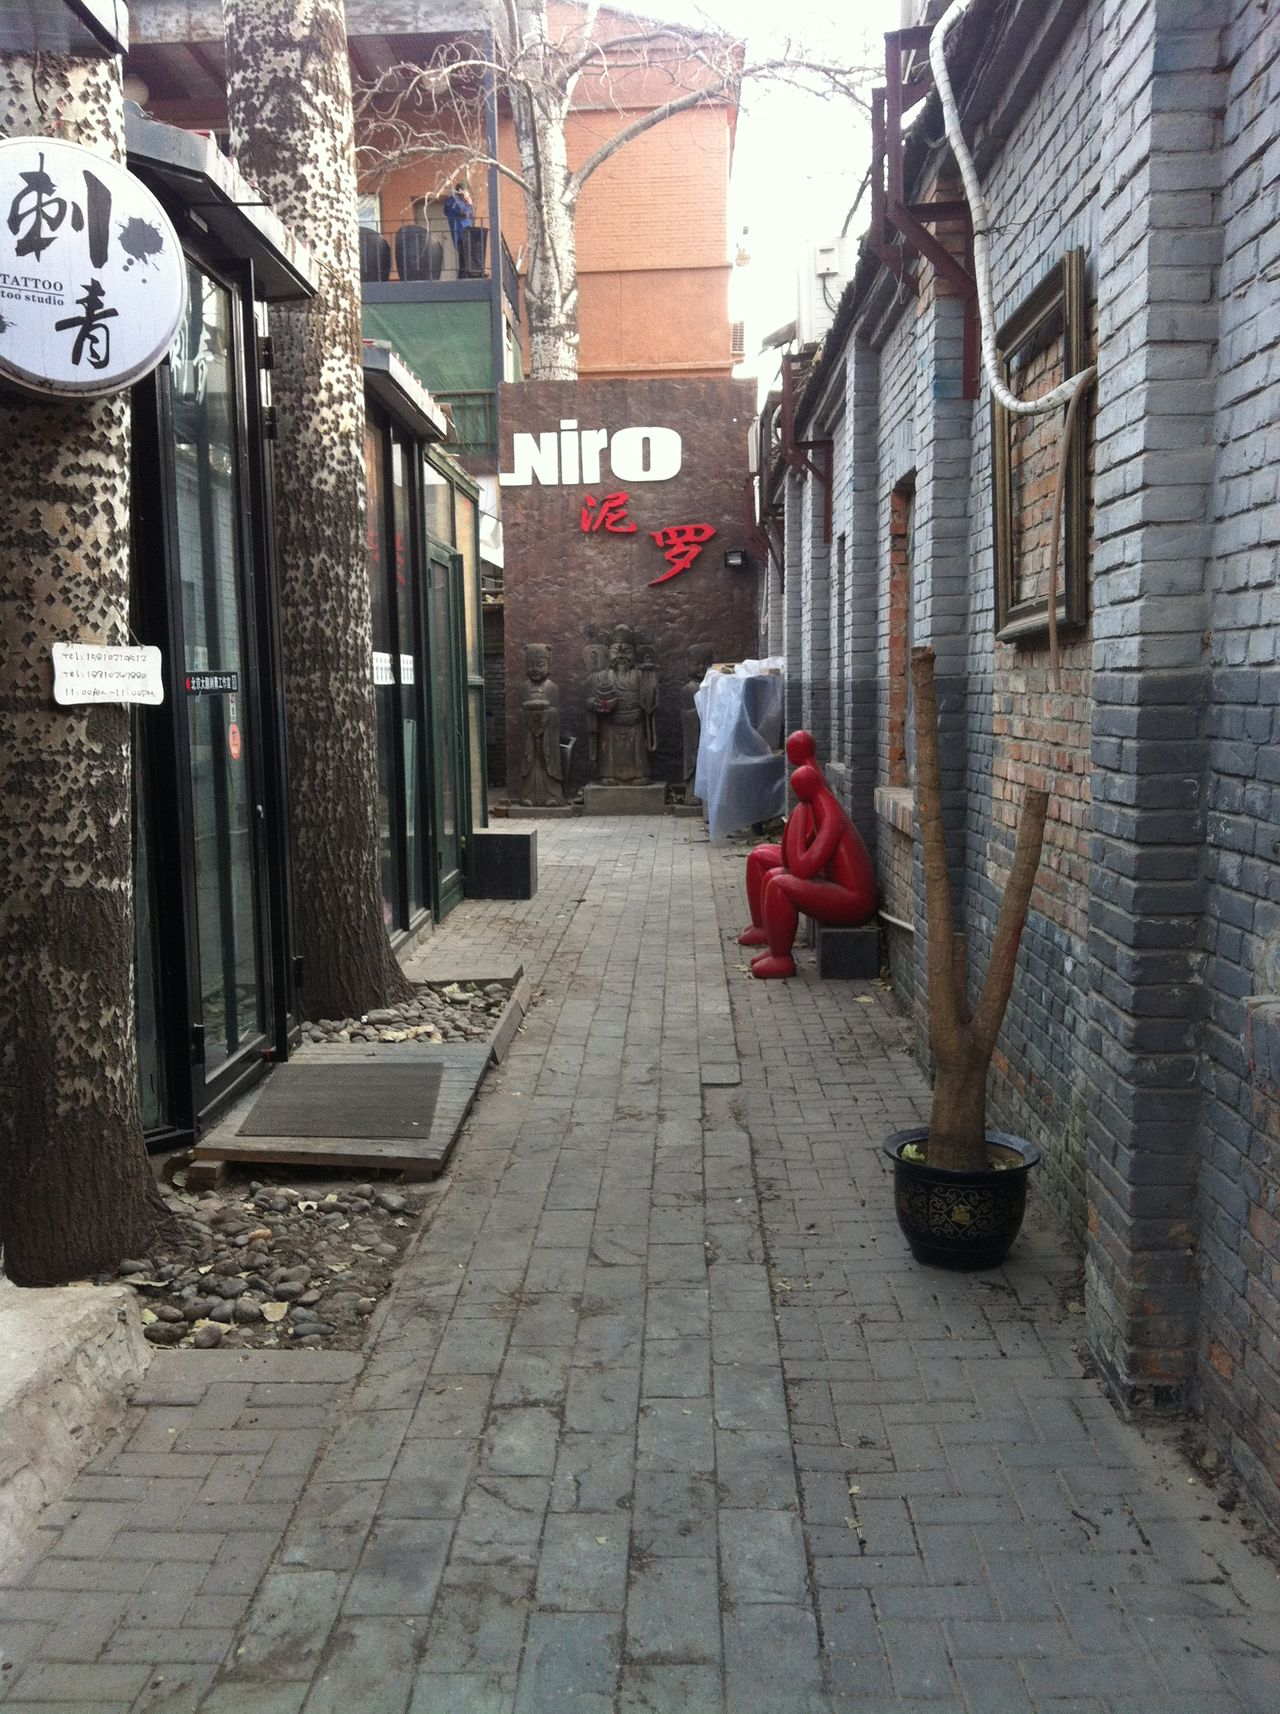 798 798 Art Zone 798艺术区 798artzone Adapted To The City Adult Adults Only Architecture Beijing Beijing, China Beijinglife Built Structure Day Full Length Lifestyles One Person Outdoors People Real People The Way Forward Women BEIJING北京CHINA中国BEAUTY